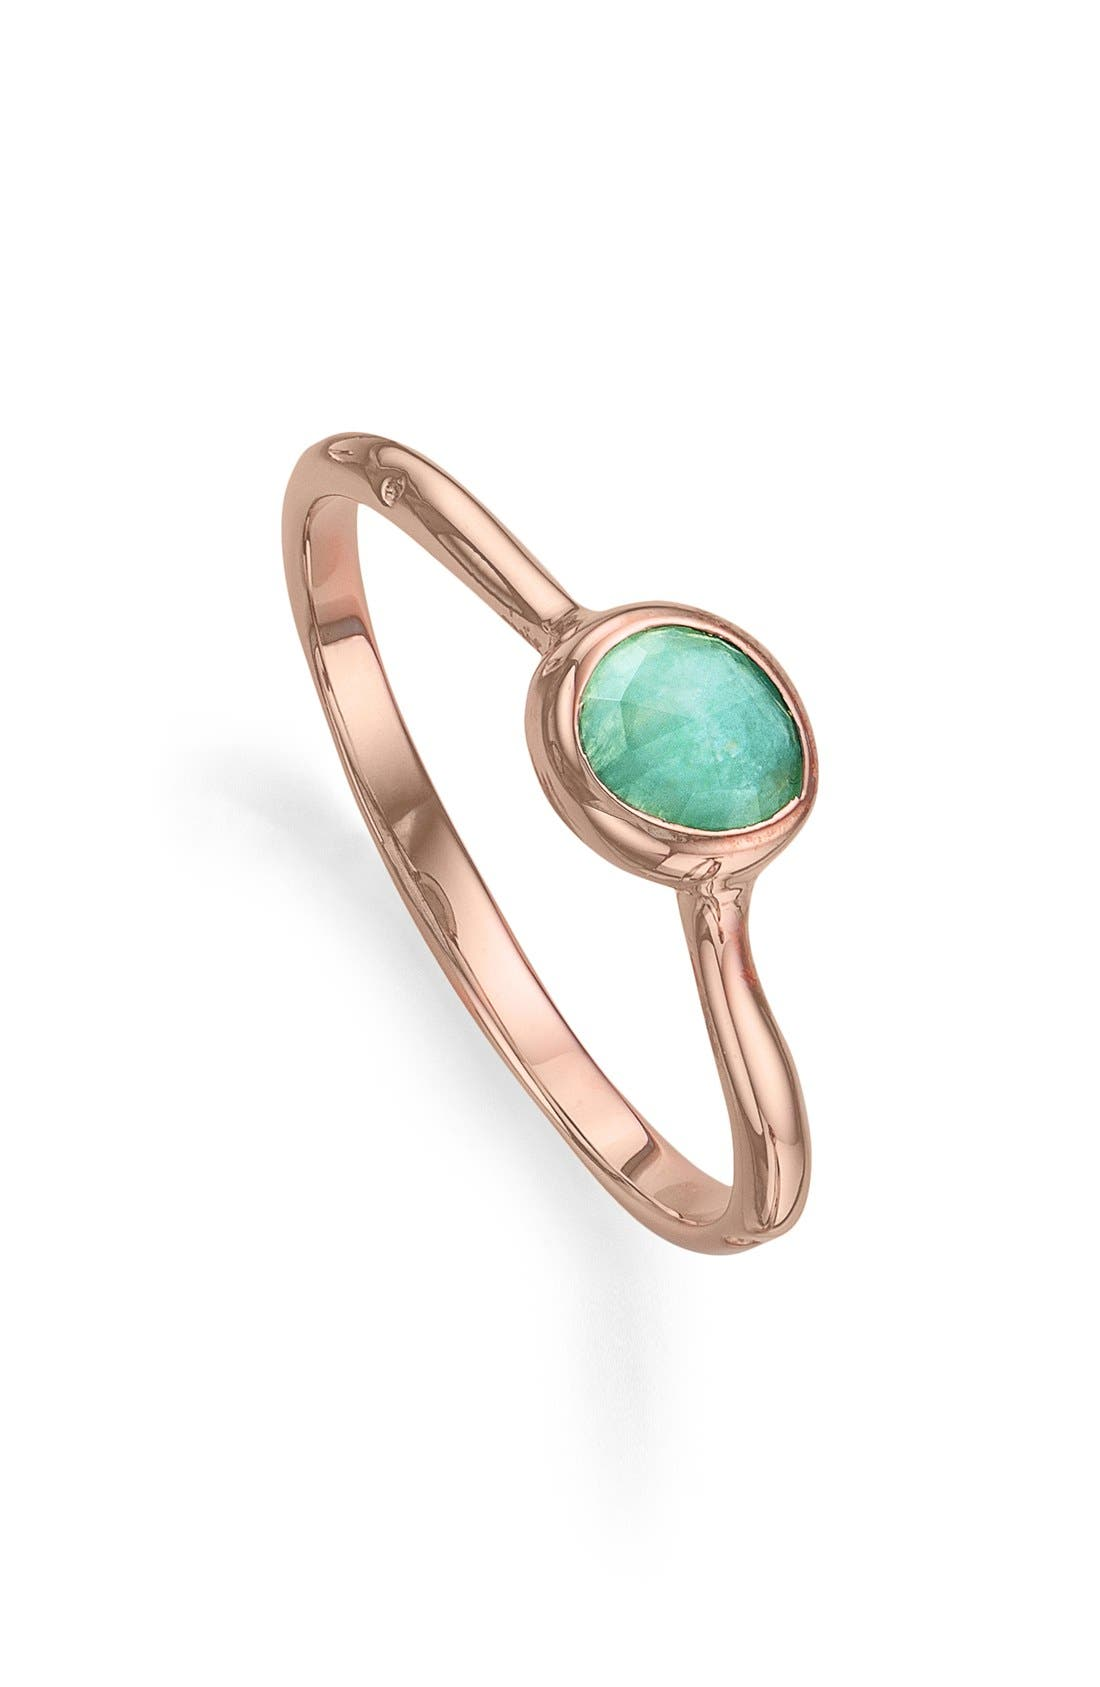 'Siren' Small Stacking Ring,                             Main thumbnail 1, color,                             Amazonite/ Rose Gold